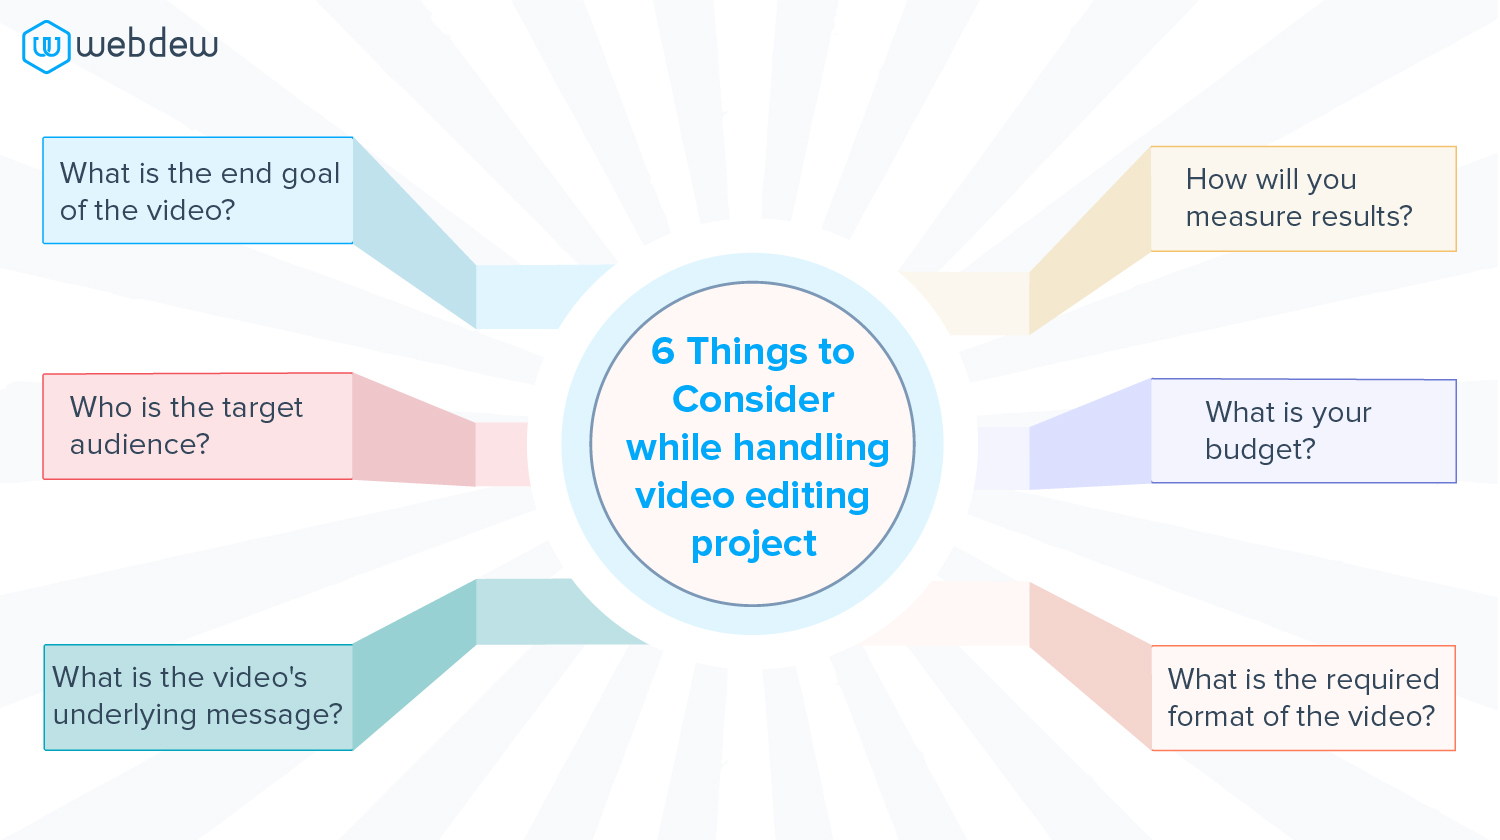 6-things-to-consider-while-handling-video-editing-process